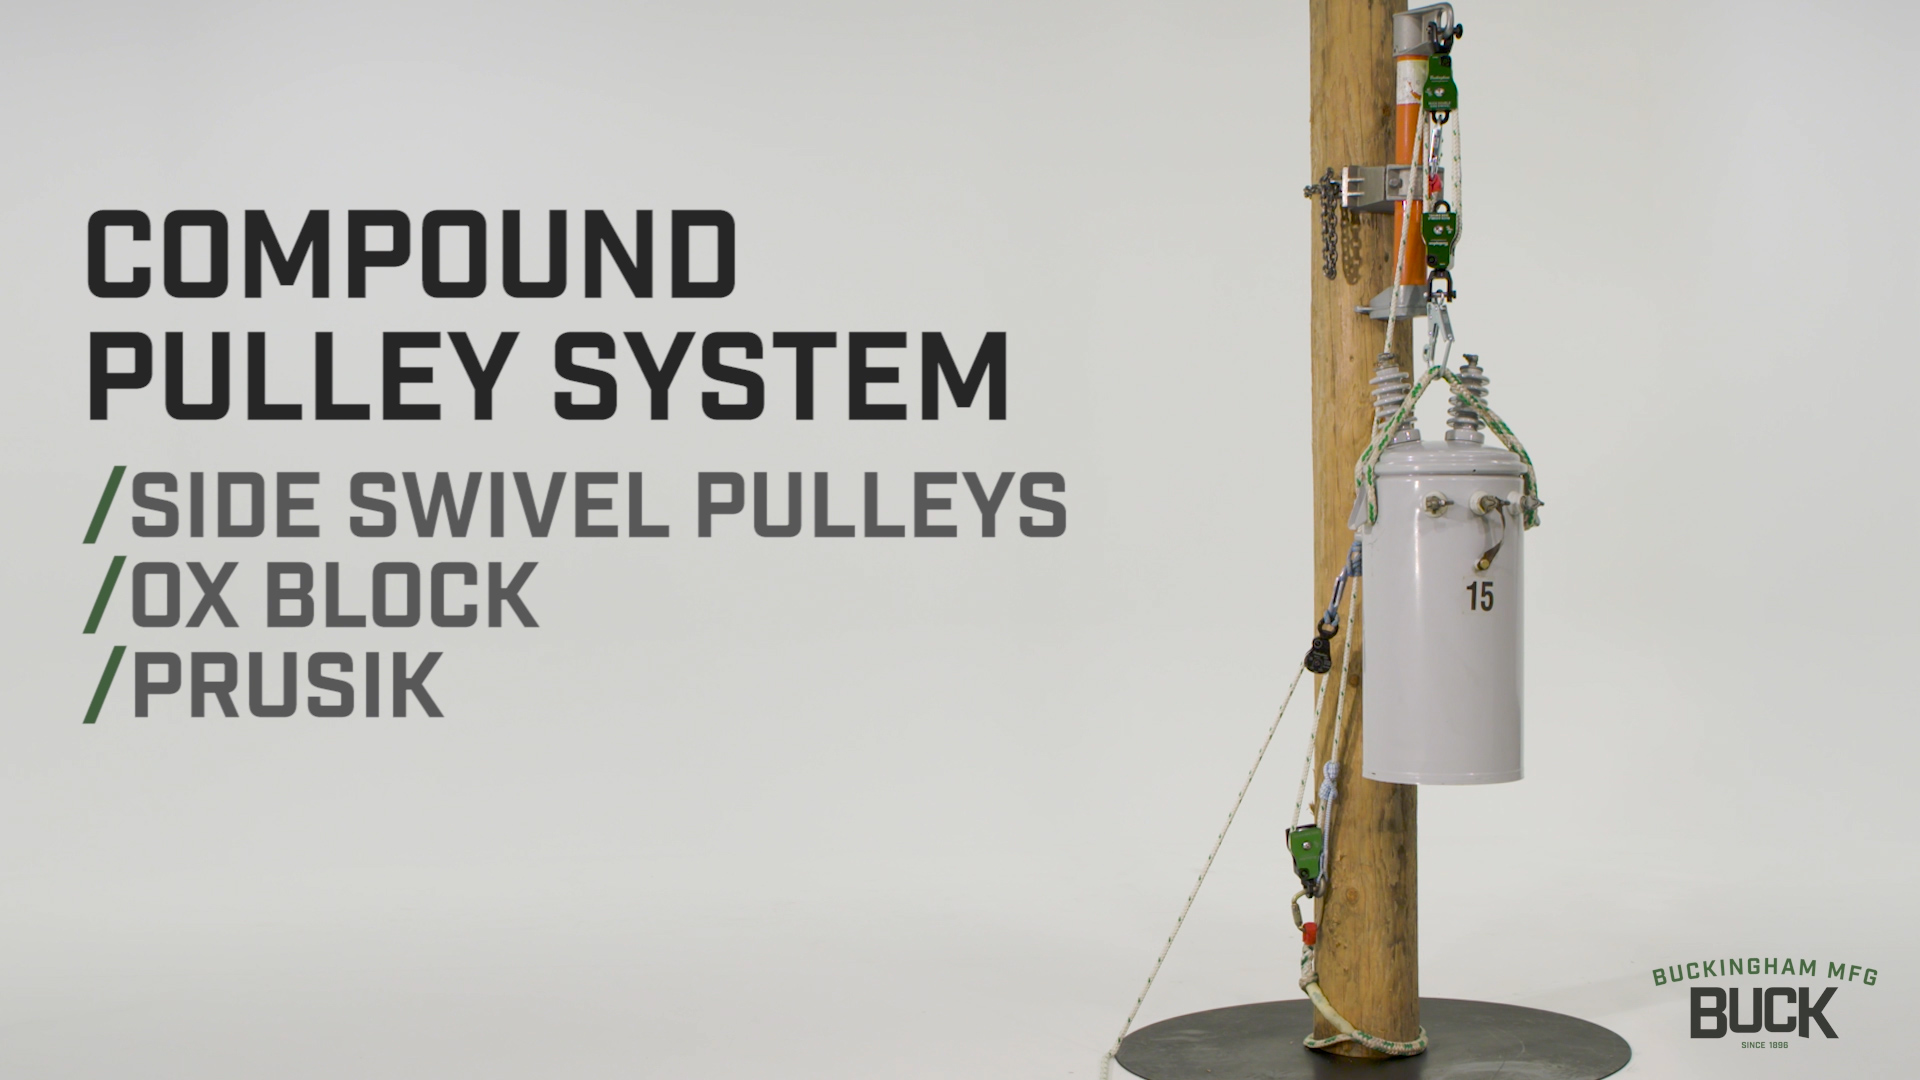 Compound Pulley System